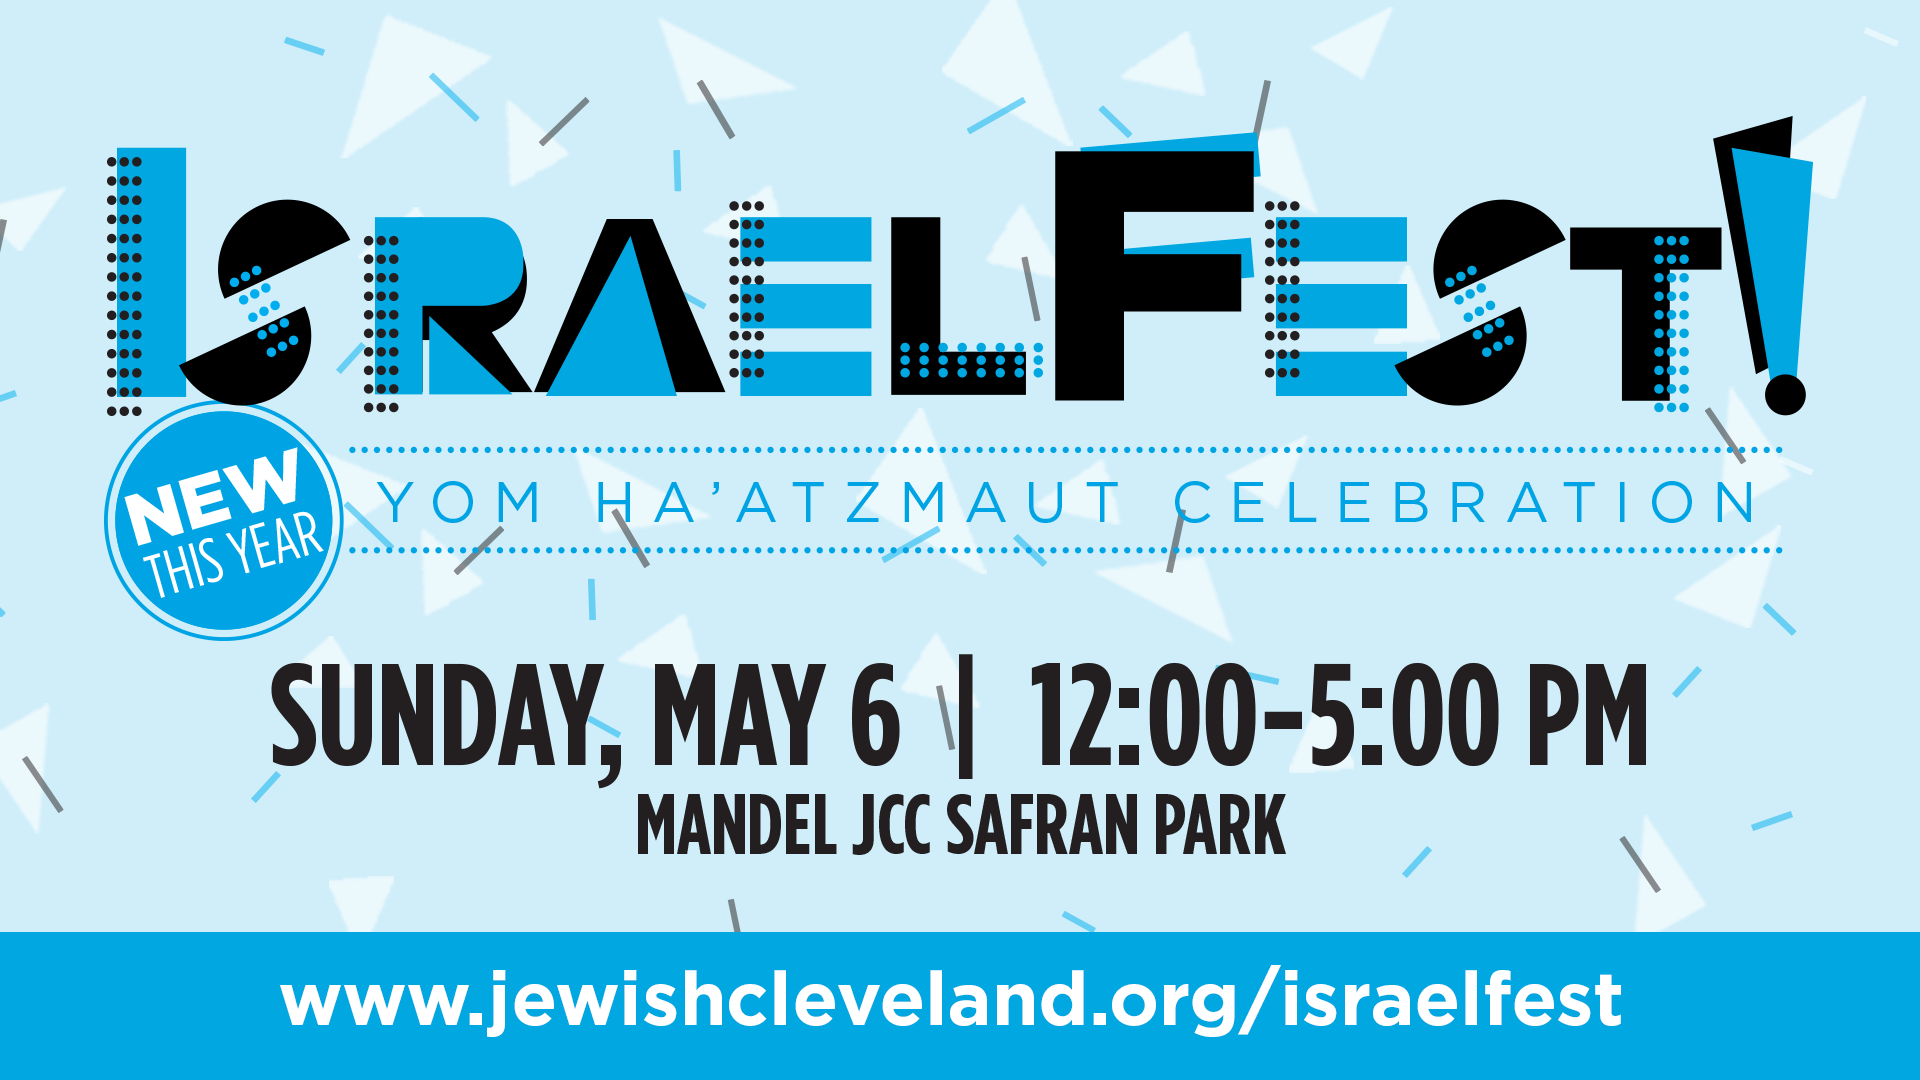 Celebrate at IsraelFest! on May 6!